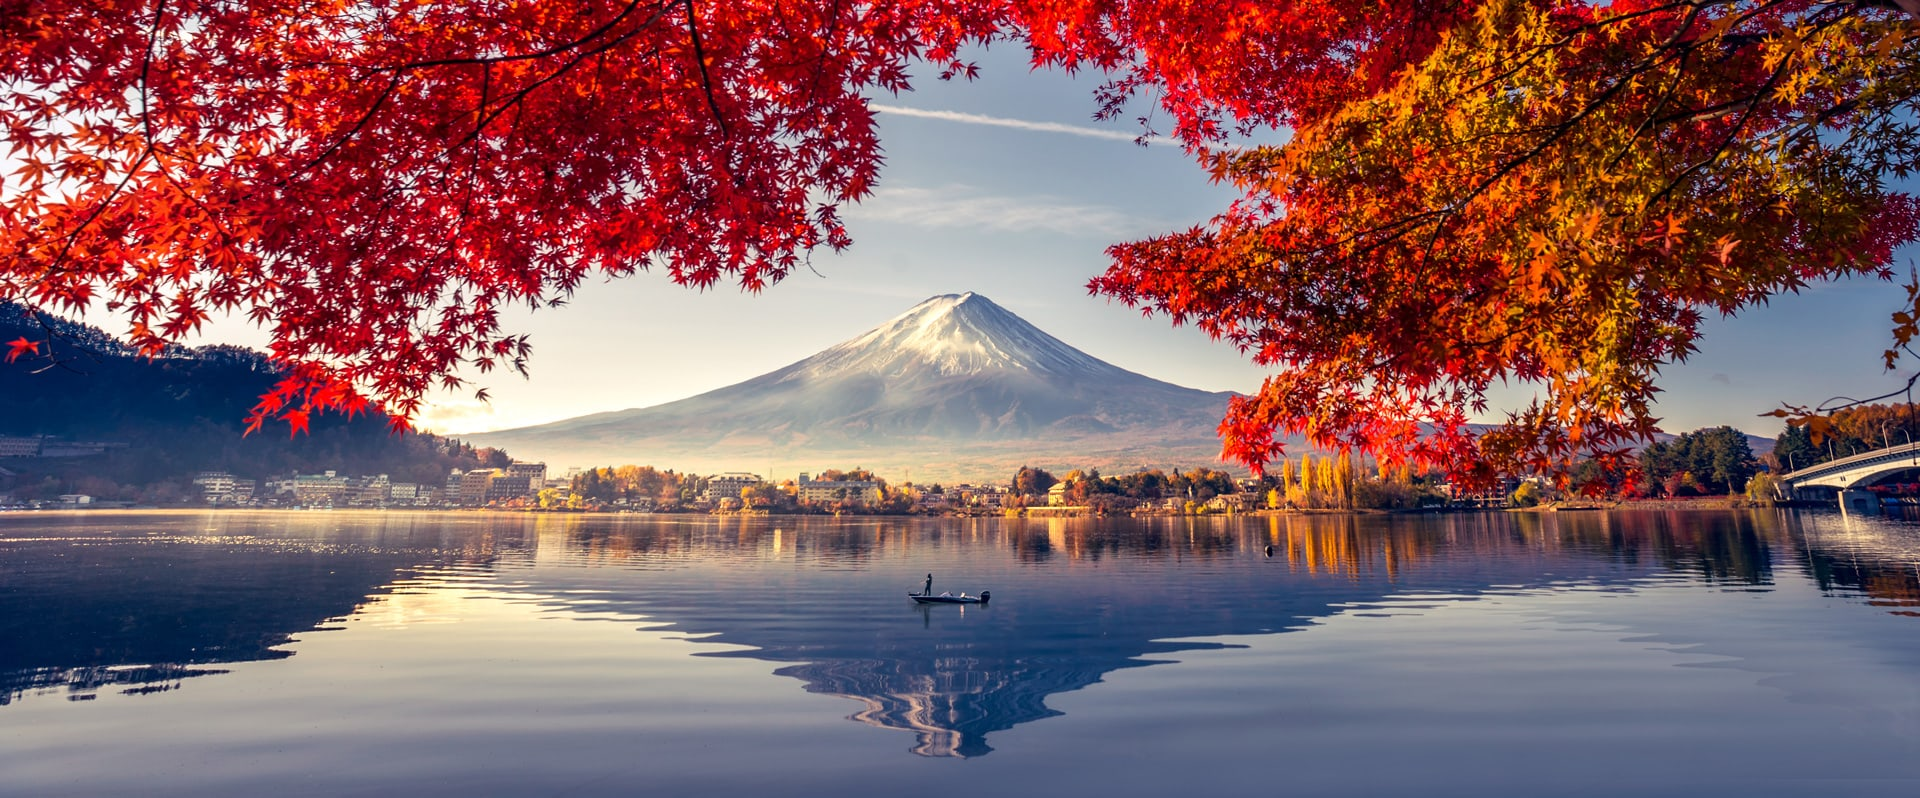 Lake Kawaguchiko Fall Colors Mt. Fuji Japan